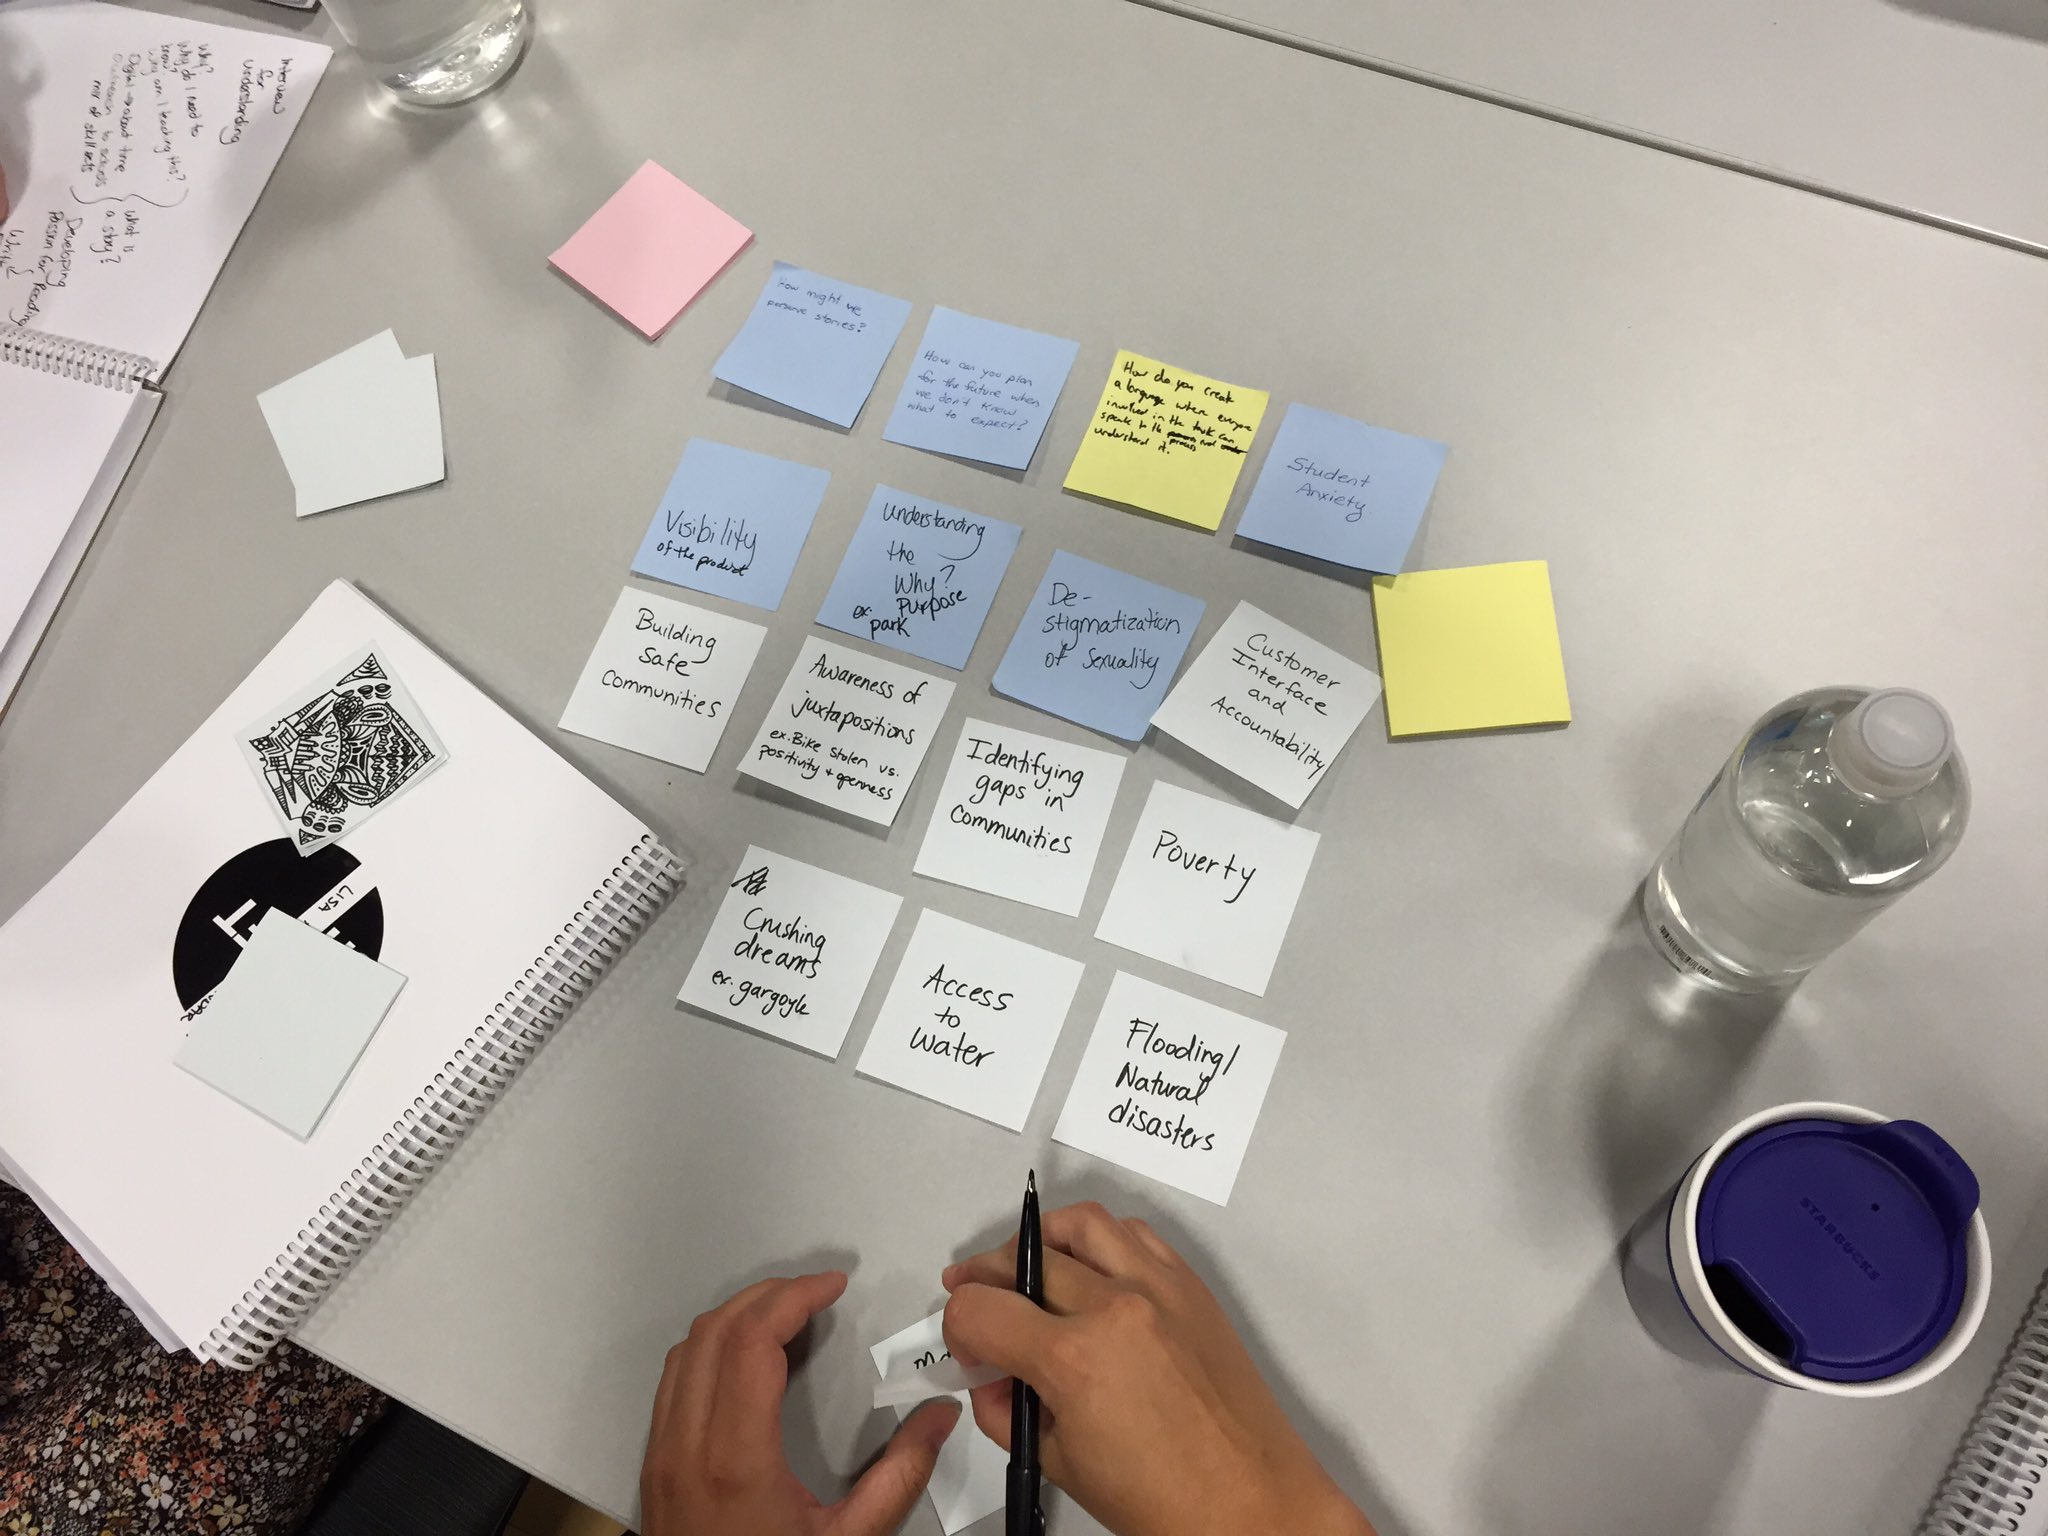 Trying to narrow to 3-4 really juicy problems. #cbeshift https://t.co/KUDwqLp25t